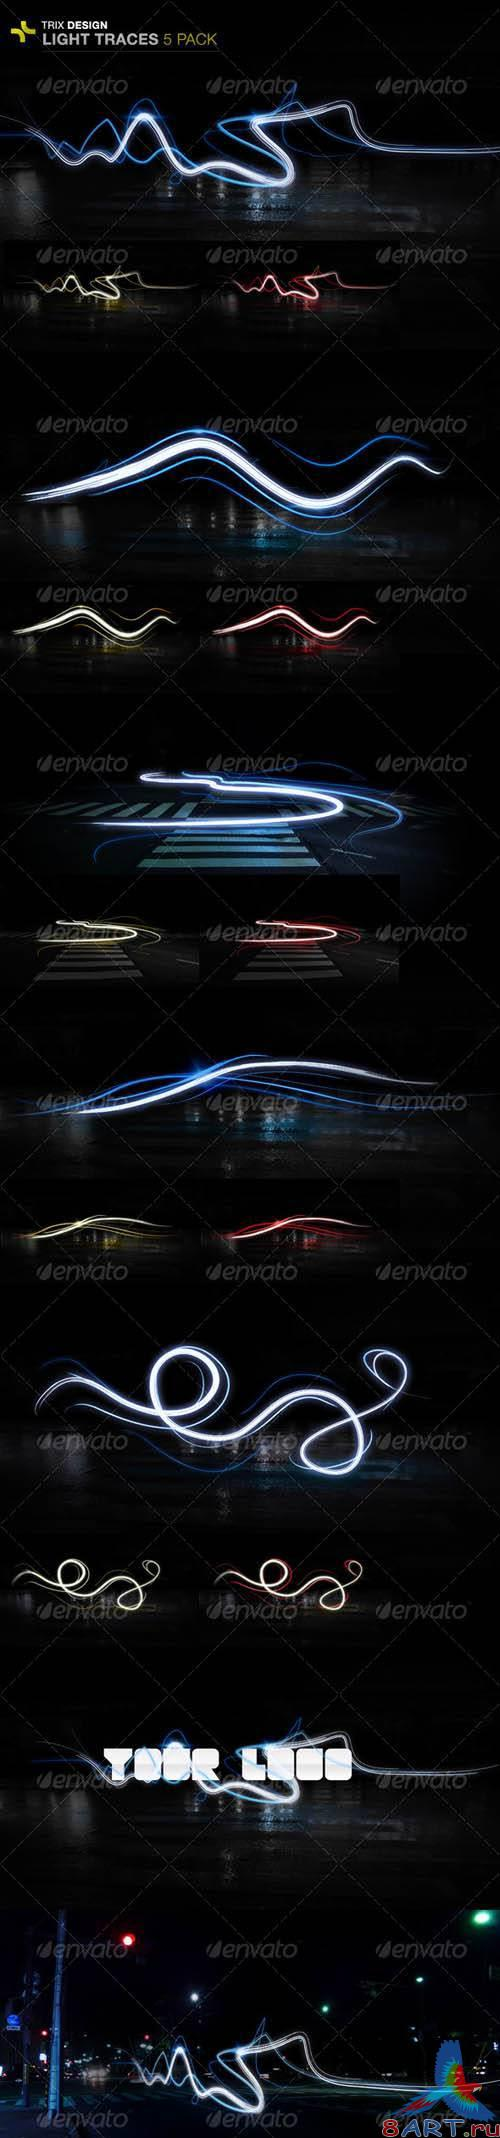 Graphicriver Light-Trails 5 Pack